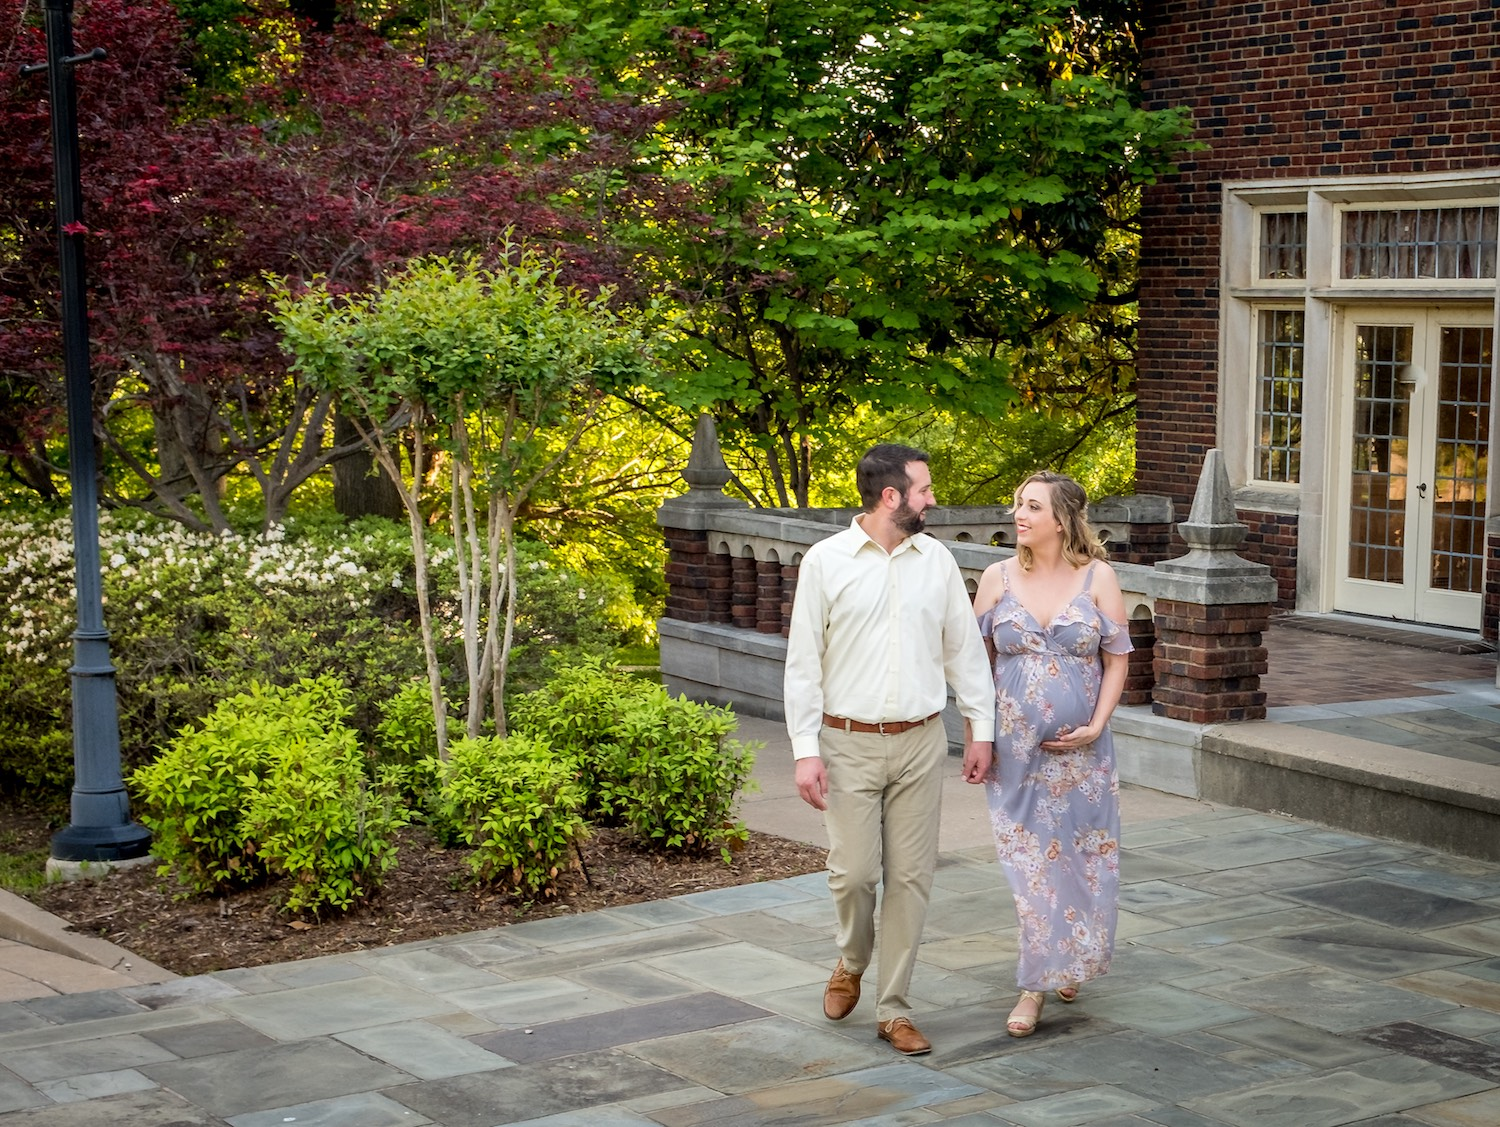 portrait of a couple in a garden - 5 Crucial Mistakes You Need to Avoid When Photographing Clients